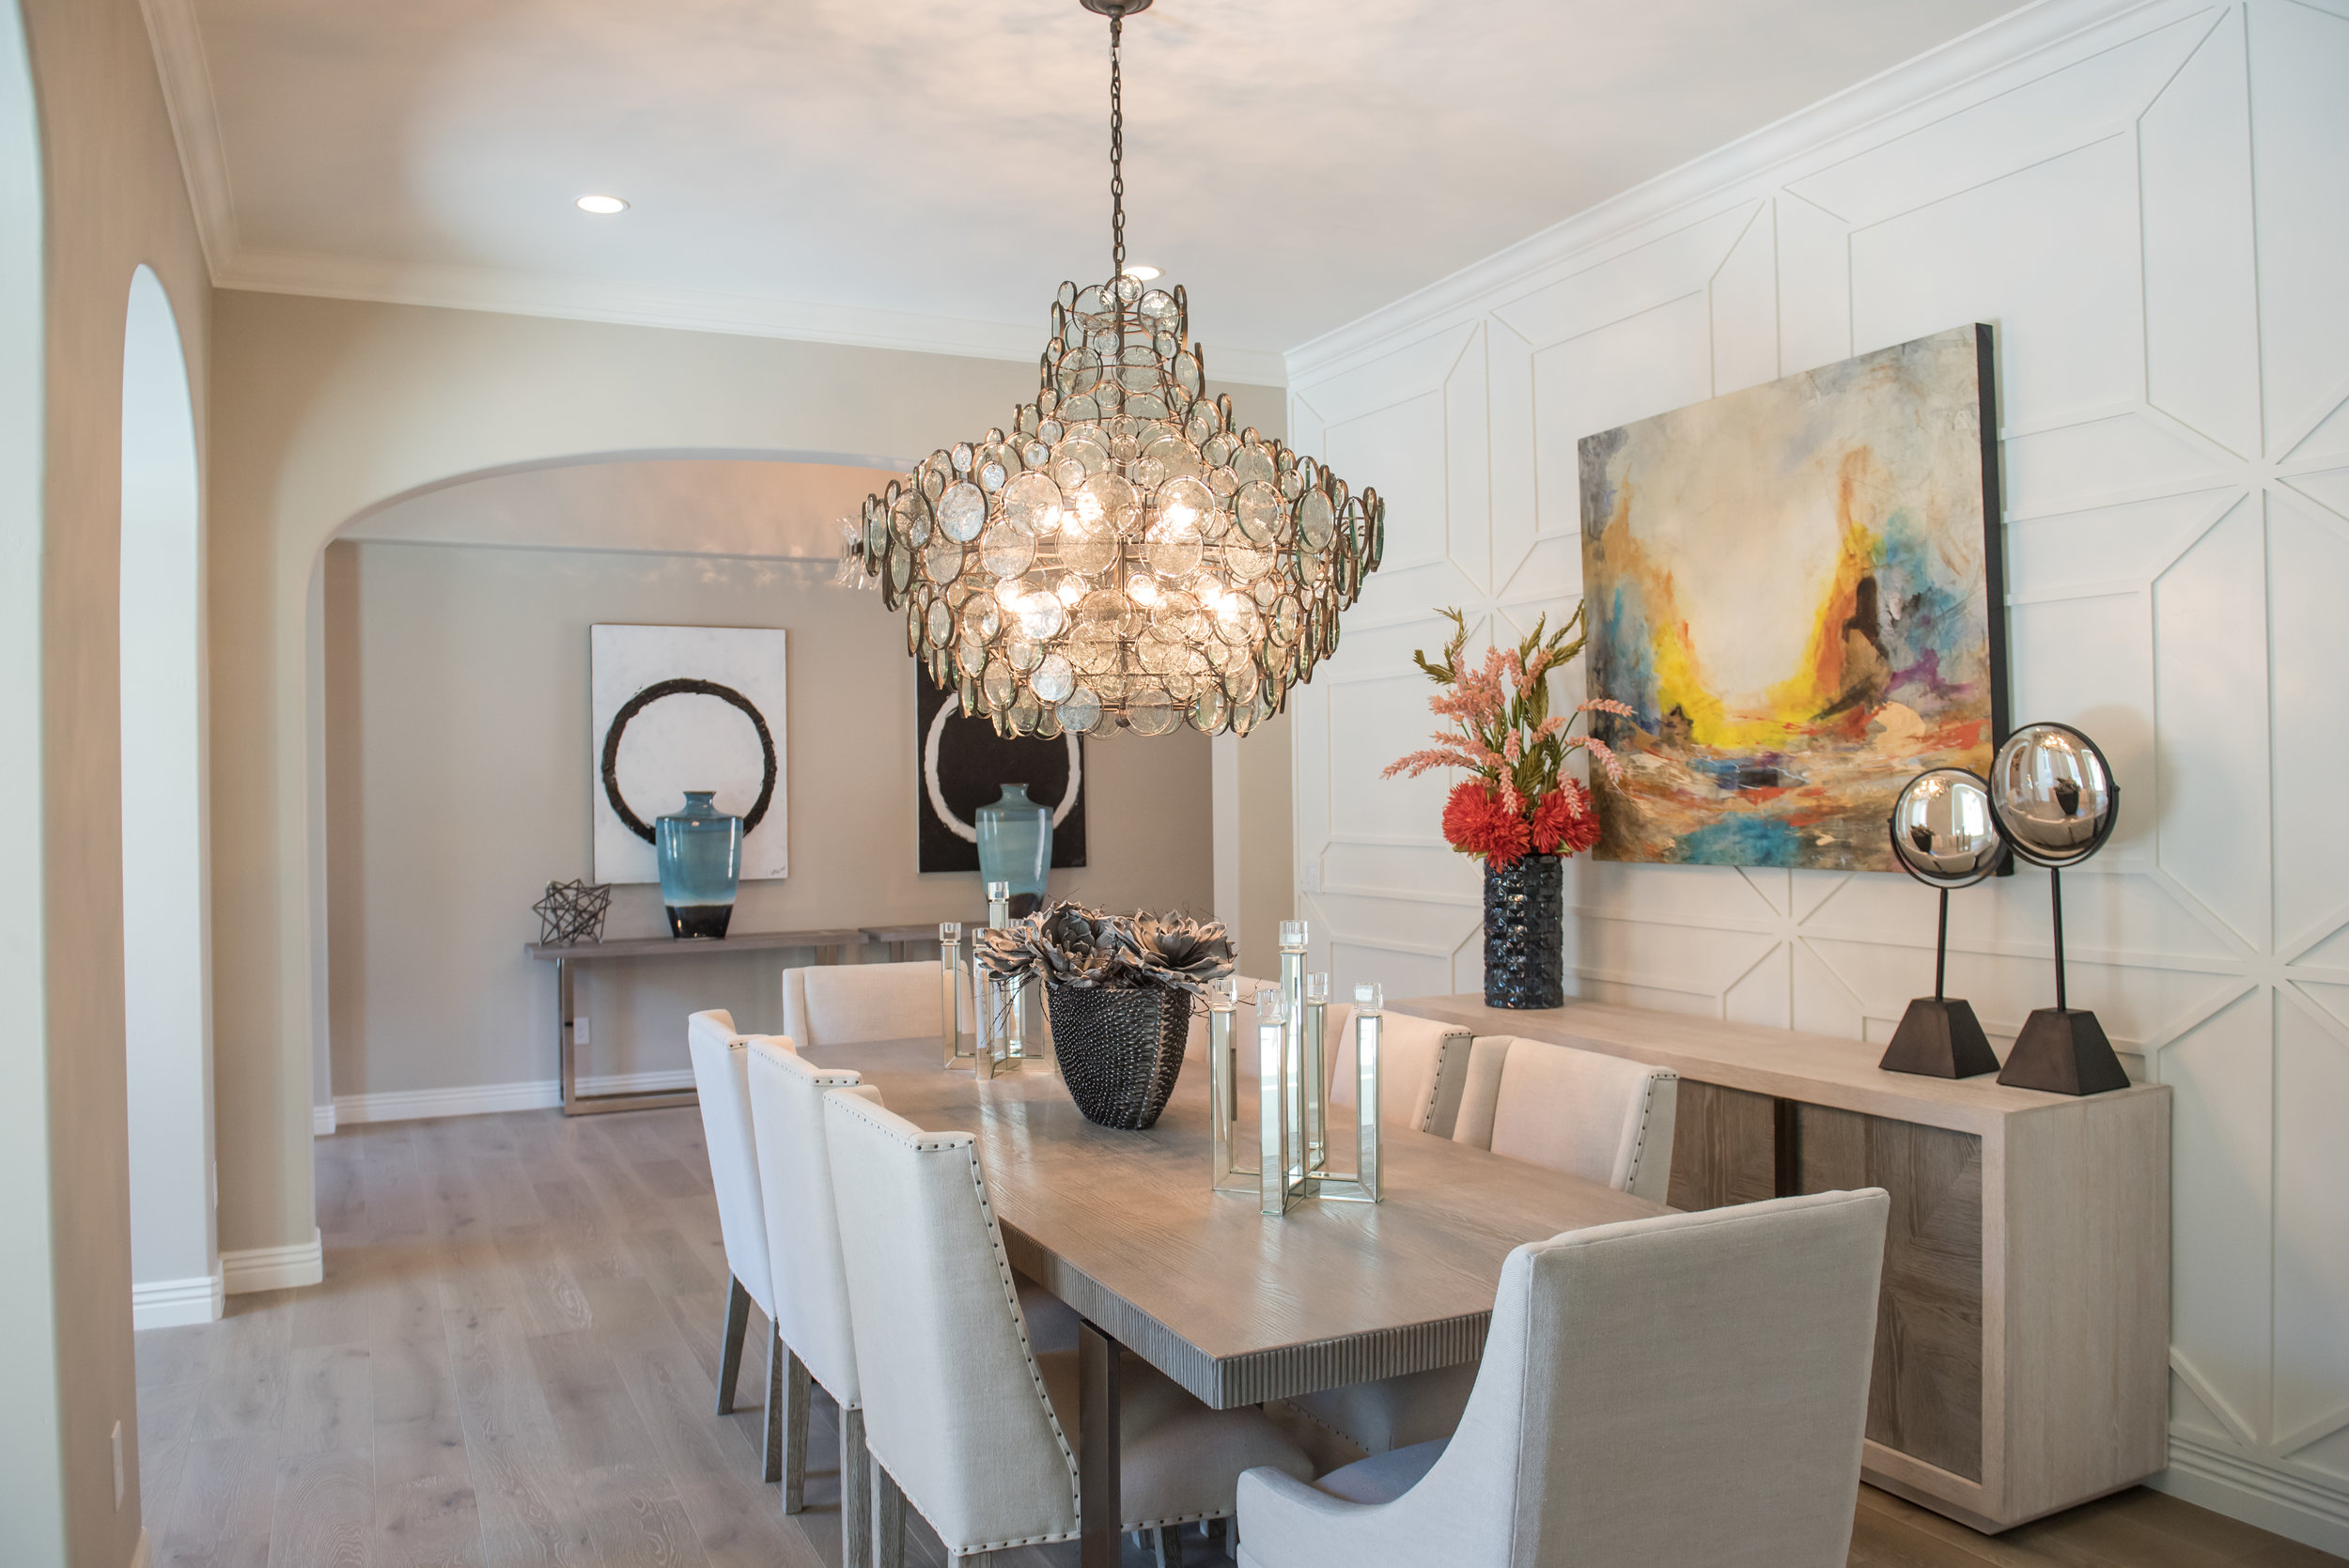 2Dining+Linen+Whiteoak+Modernart+Transitional+chandelier+scottsdale.jpg